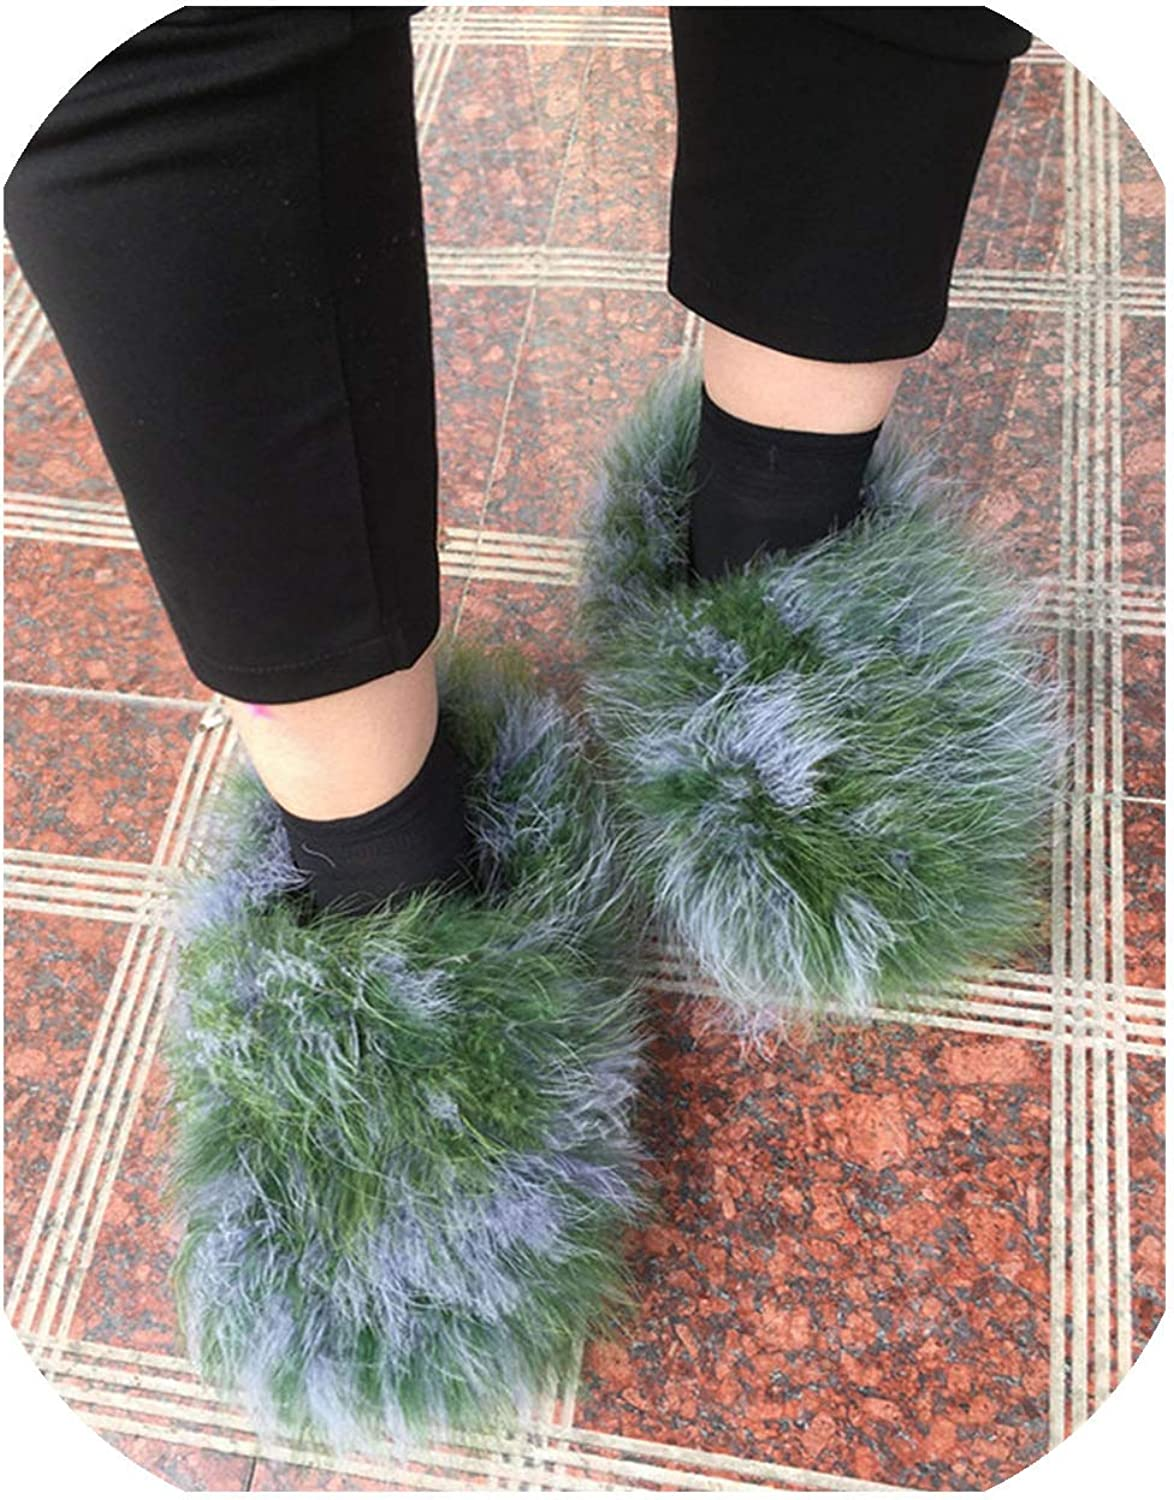 shoes Women Winter Warm Plush Flat Slippers Ladies Sweet Candy color Home,